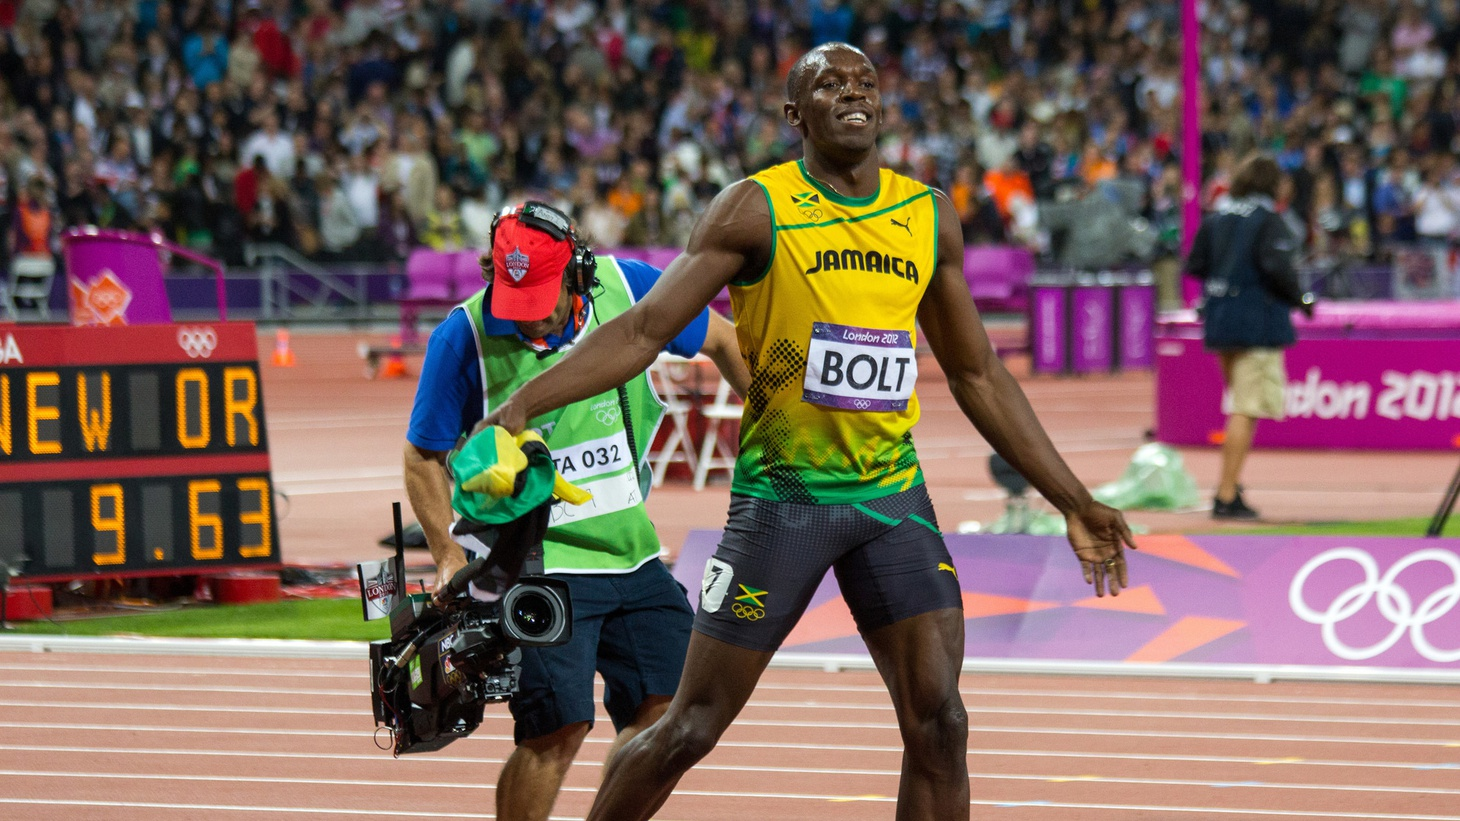 A photographer catches up with Bolt after his gold-medal win at the London's Olympics Photo by  Hilts uk    Usain Bolt is billed as the fastest man on Earth, and other Jamaicans are right behind him.        This week's 100-meter dash was the third straight victory in that Olympic event for the man now called the fastest on Earth. Fellow…